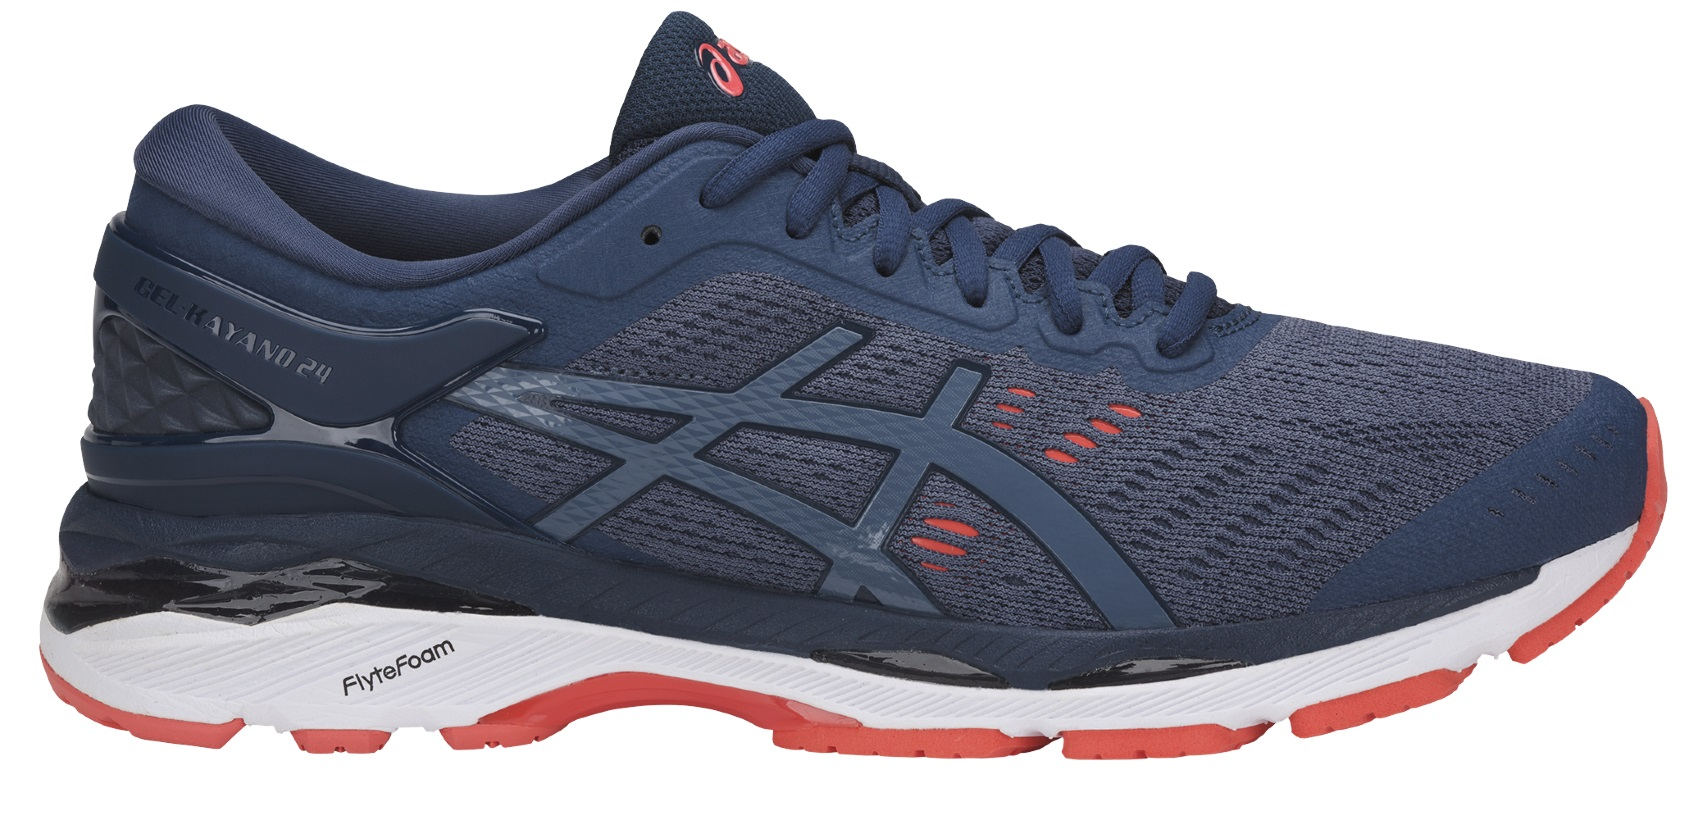 Asics GEL-KAYANO 24 M - Smoke Blue / Smoke Blue / Dark Blue